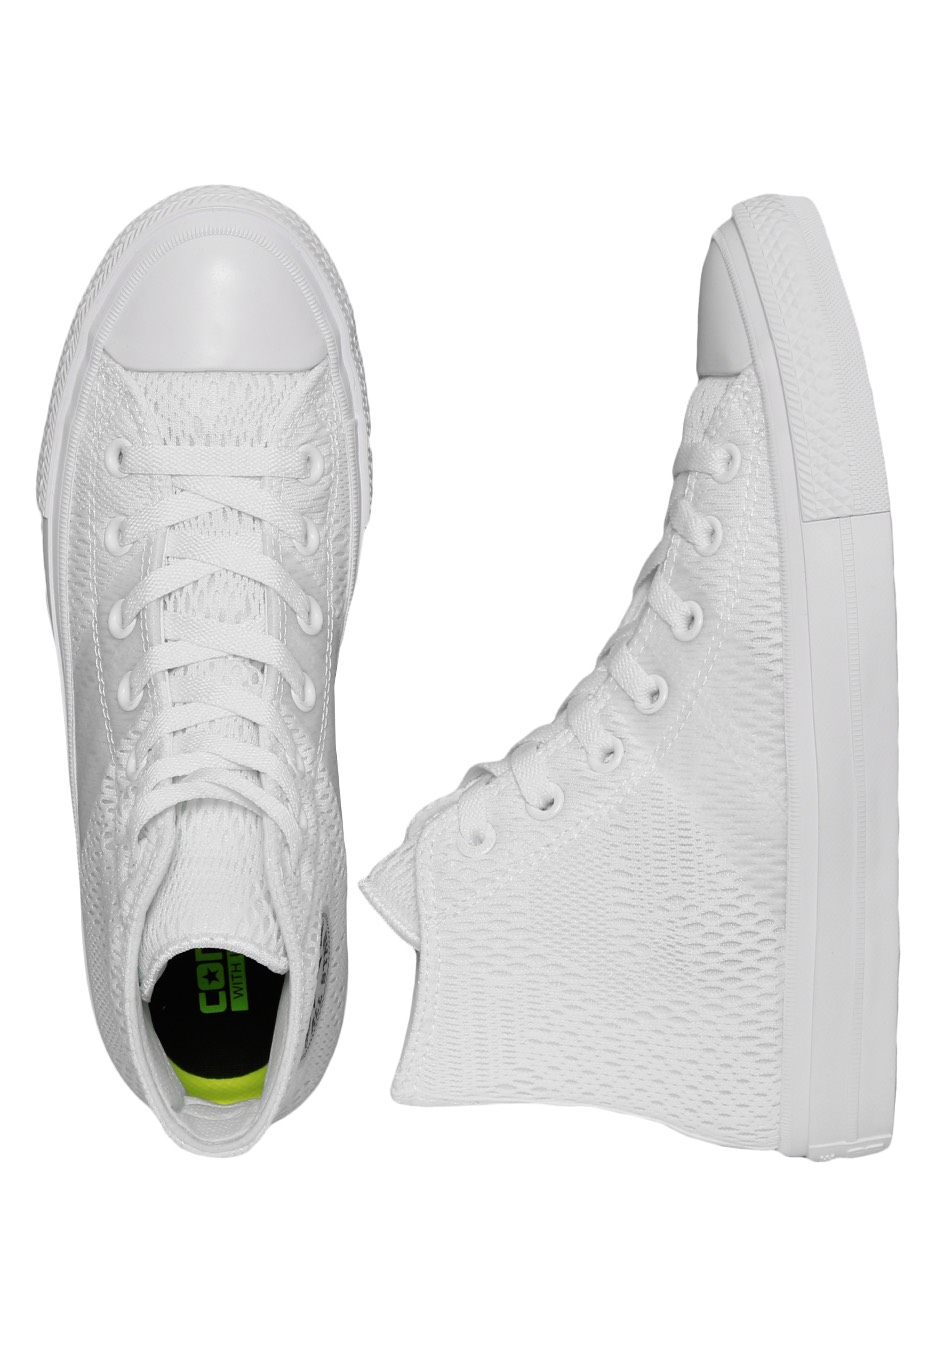 Converse - Chuck Taylor All Star II Engineered Mesh Optical White - Girl  Shoes - Impericon.com UK 10680f6386a